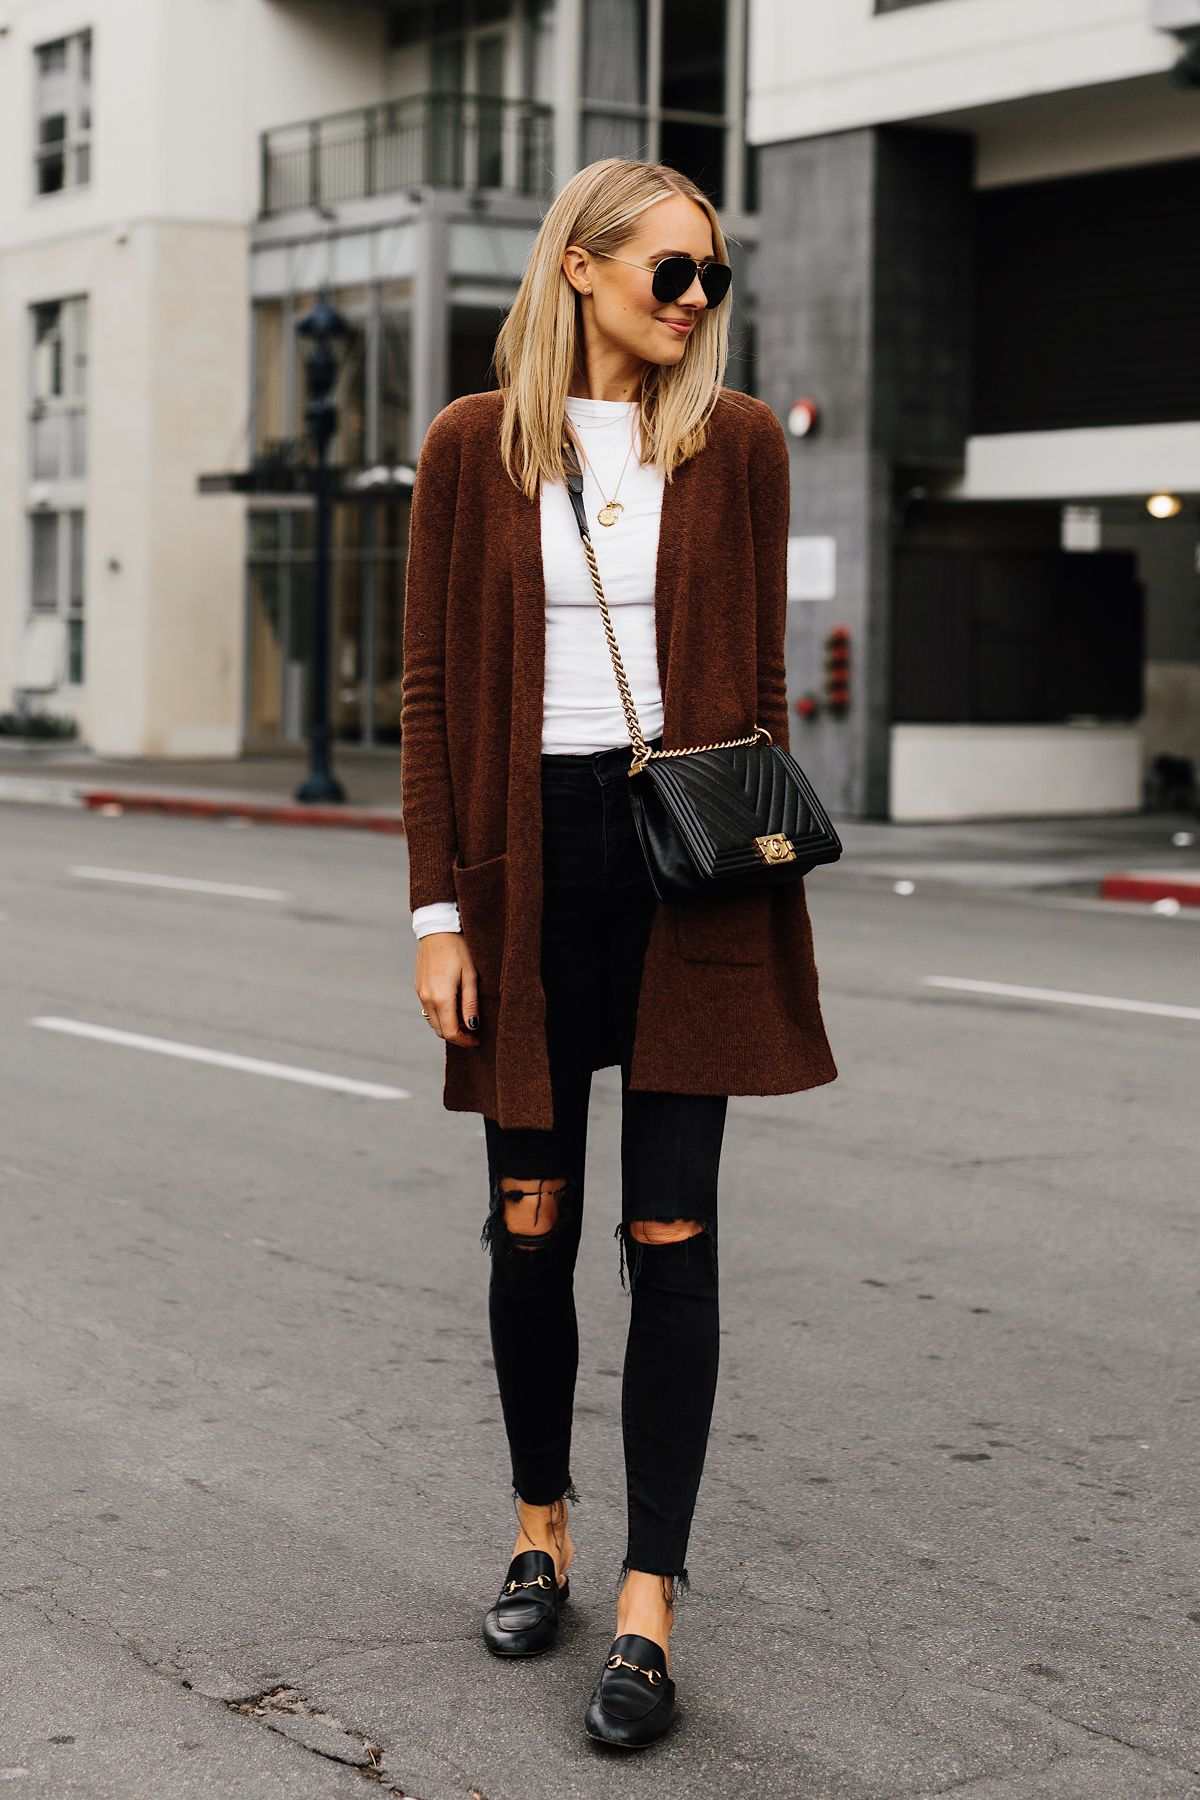 29acfaee86f Fashion Jackson Madewell Brown Long Cardigan White Top Madewell Black  Ripped Skinny Jeans Gucci Black Princetown Loafer Mules Chanel Black Boy Bag